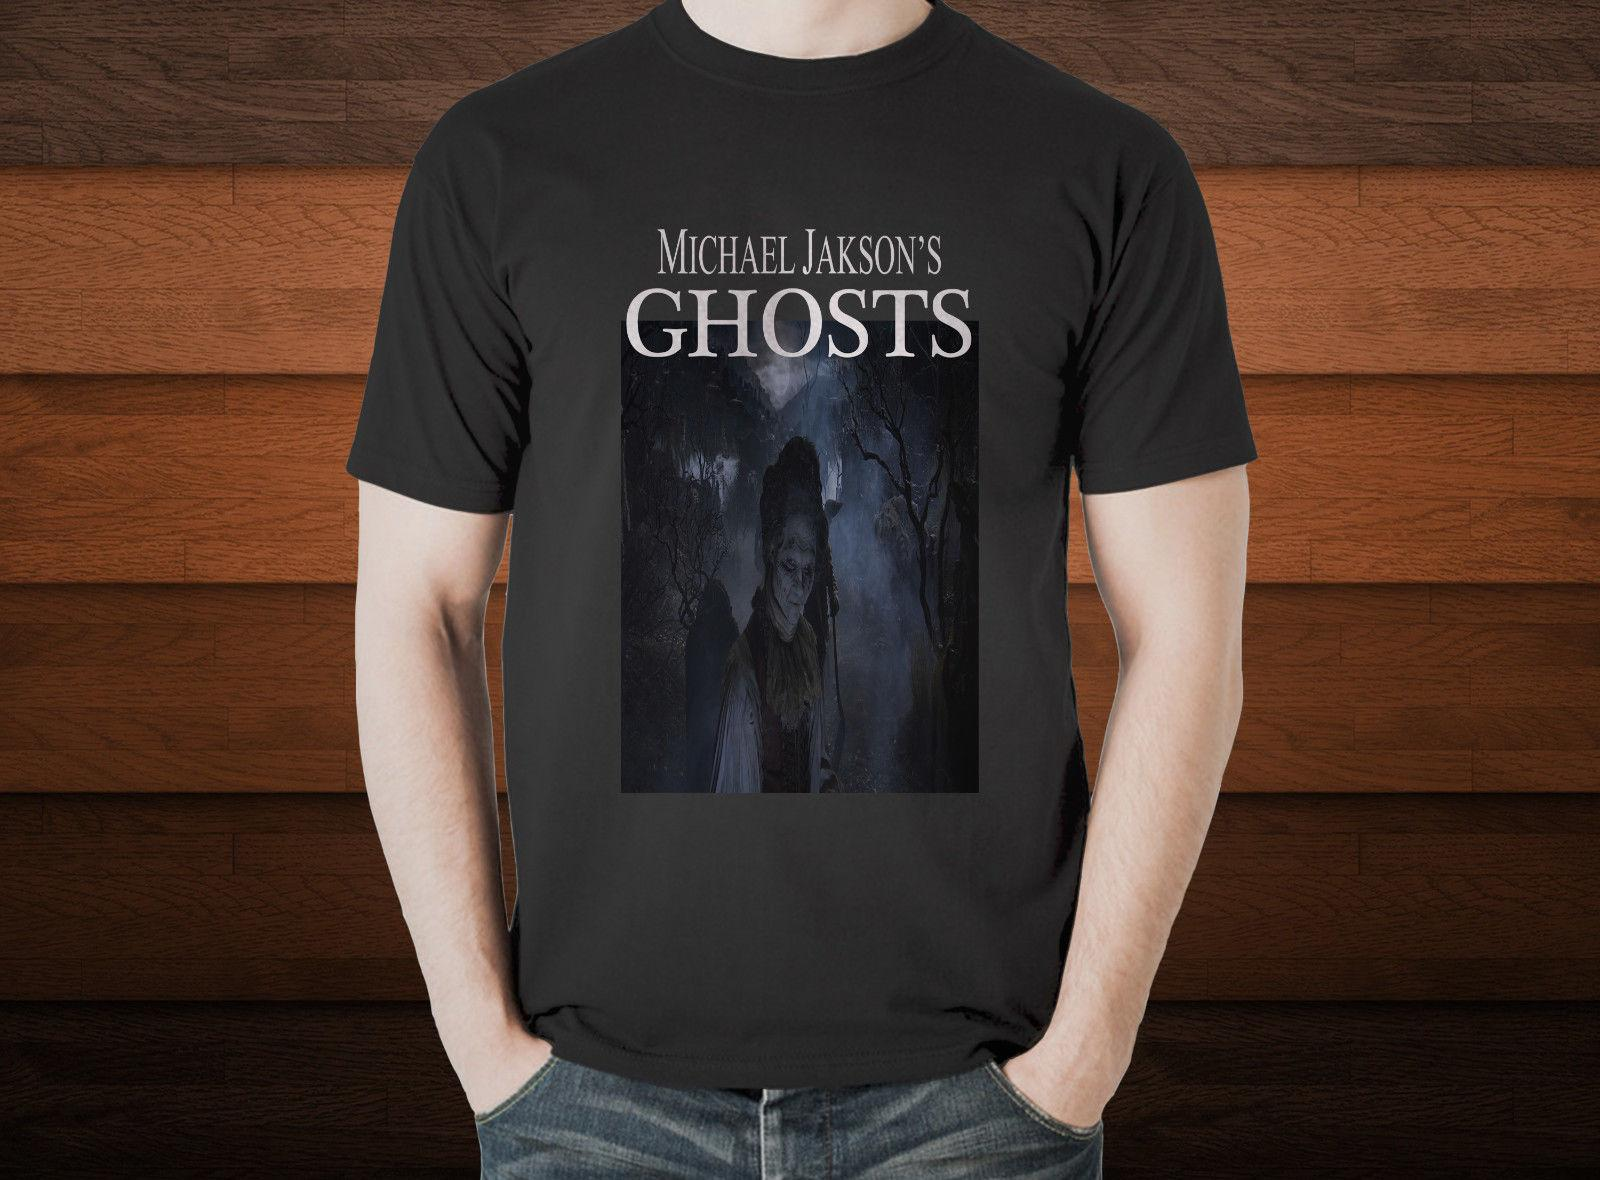 fc72dc31e0e Michael Jackson Ghost T Shirt Size S/M/L/XL/2XLFunny Unisex Casual Tshirt  Top Awesome T Shirts For Sale White T Shirts With Designs From  Tshirtdoctor, ...